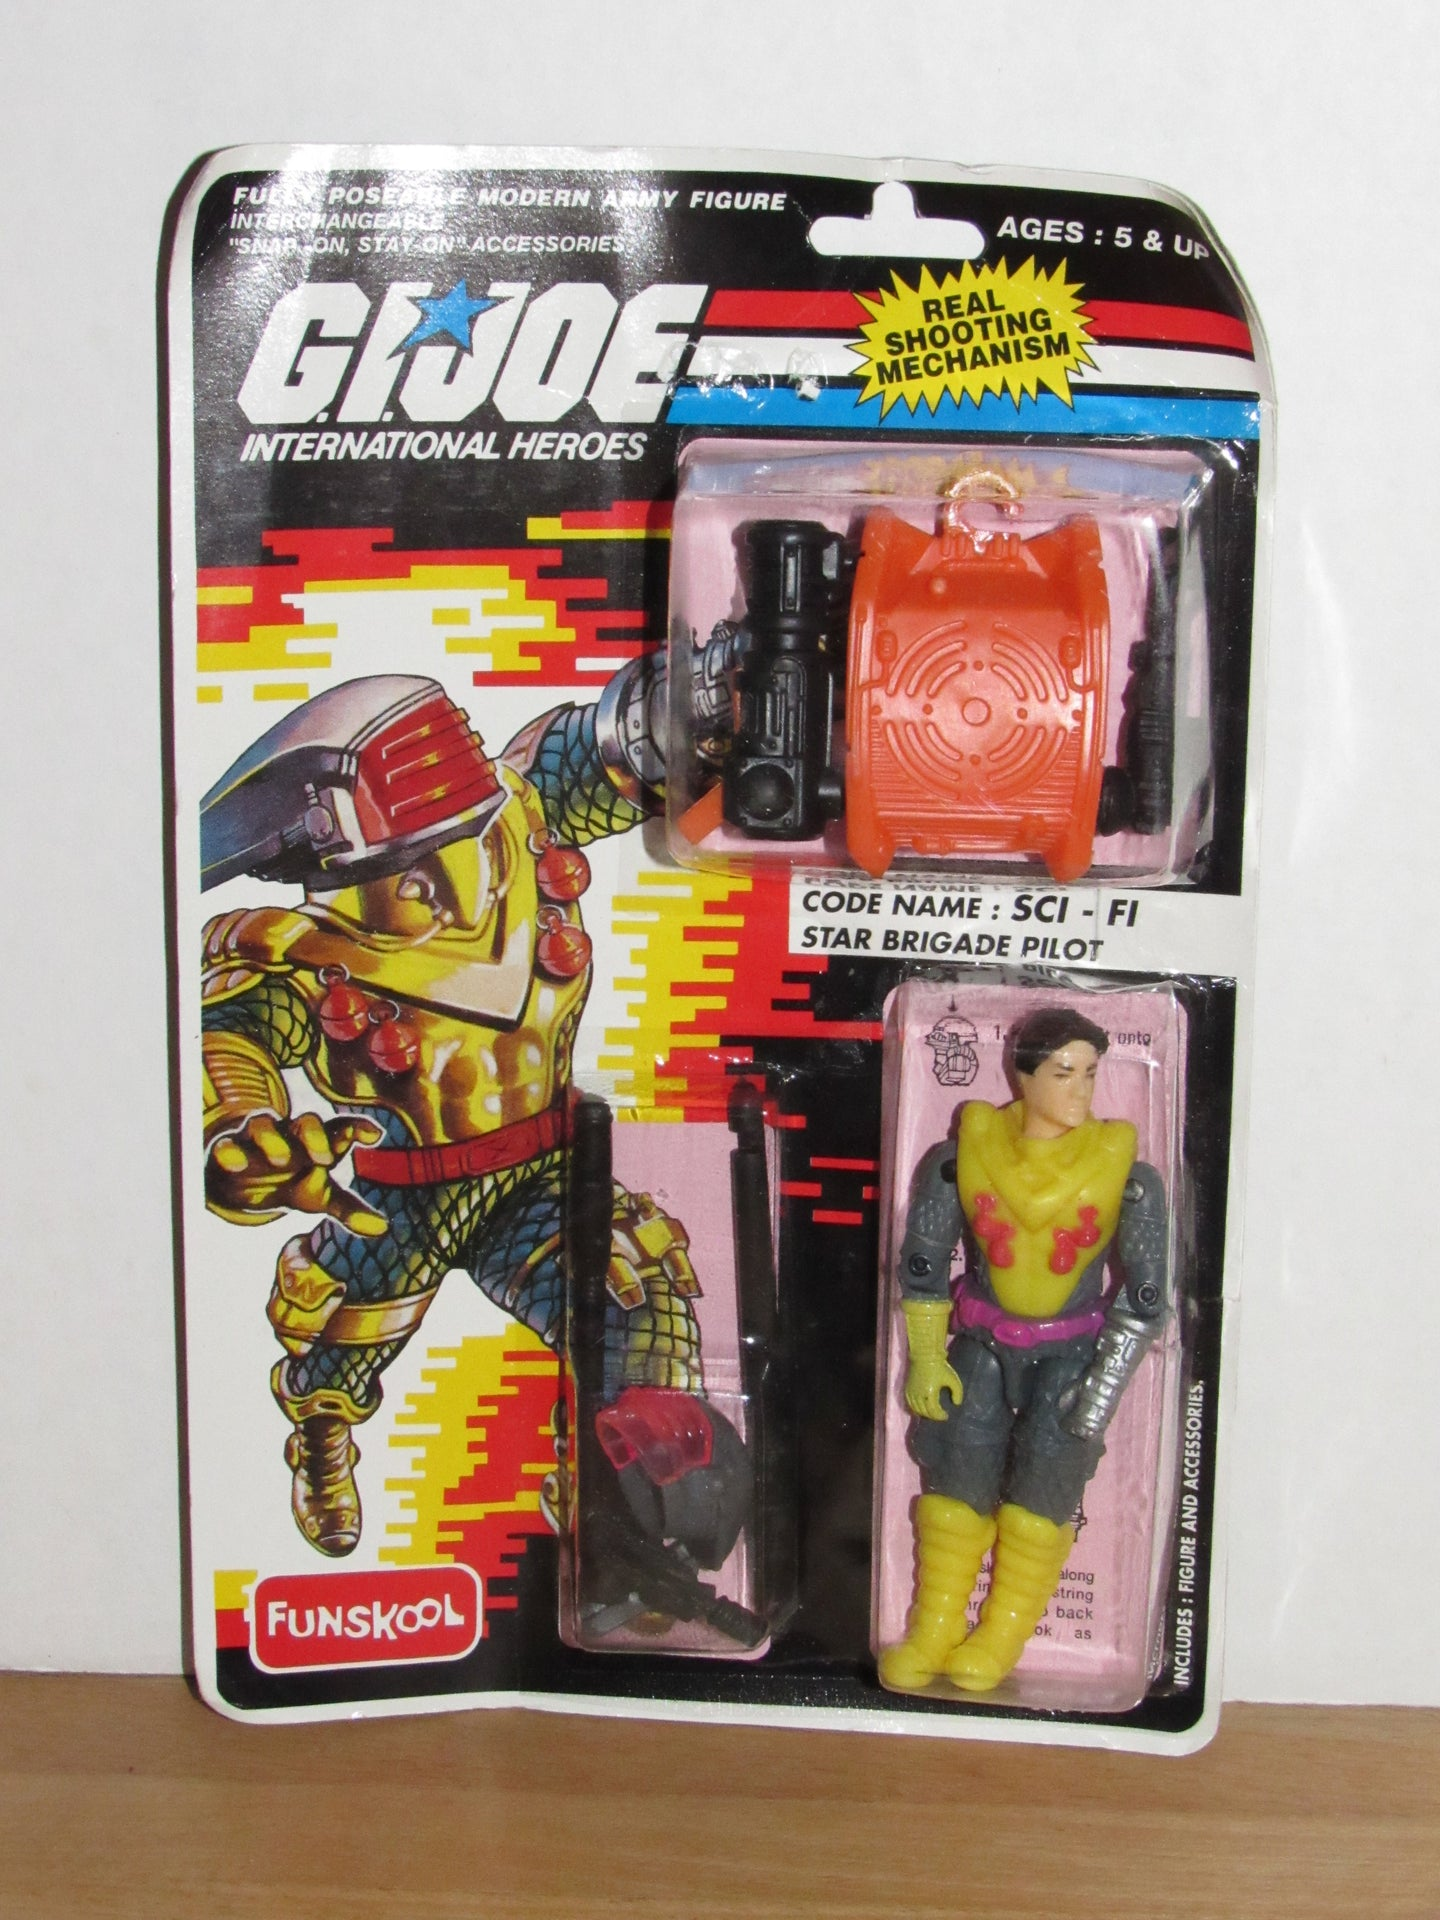 Funskool GI Joe International Heroes Star Brigade Sci-Fi MOC